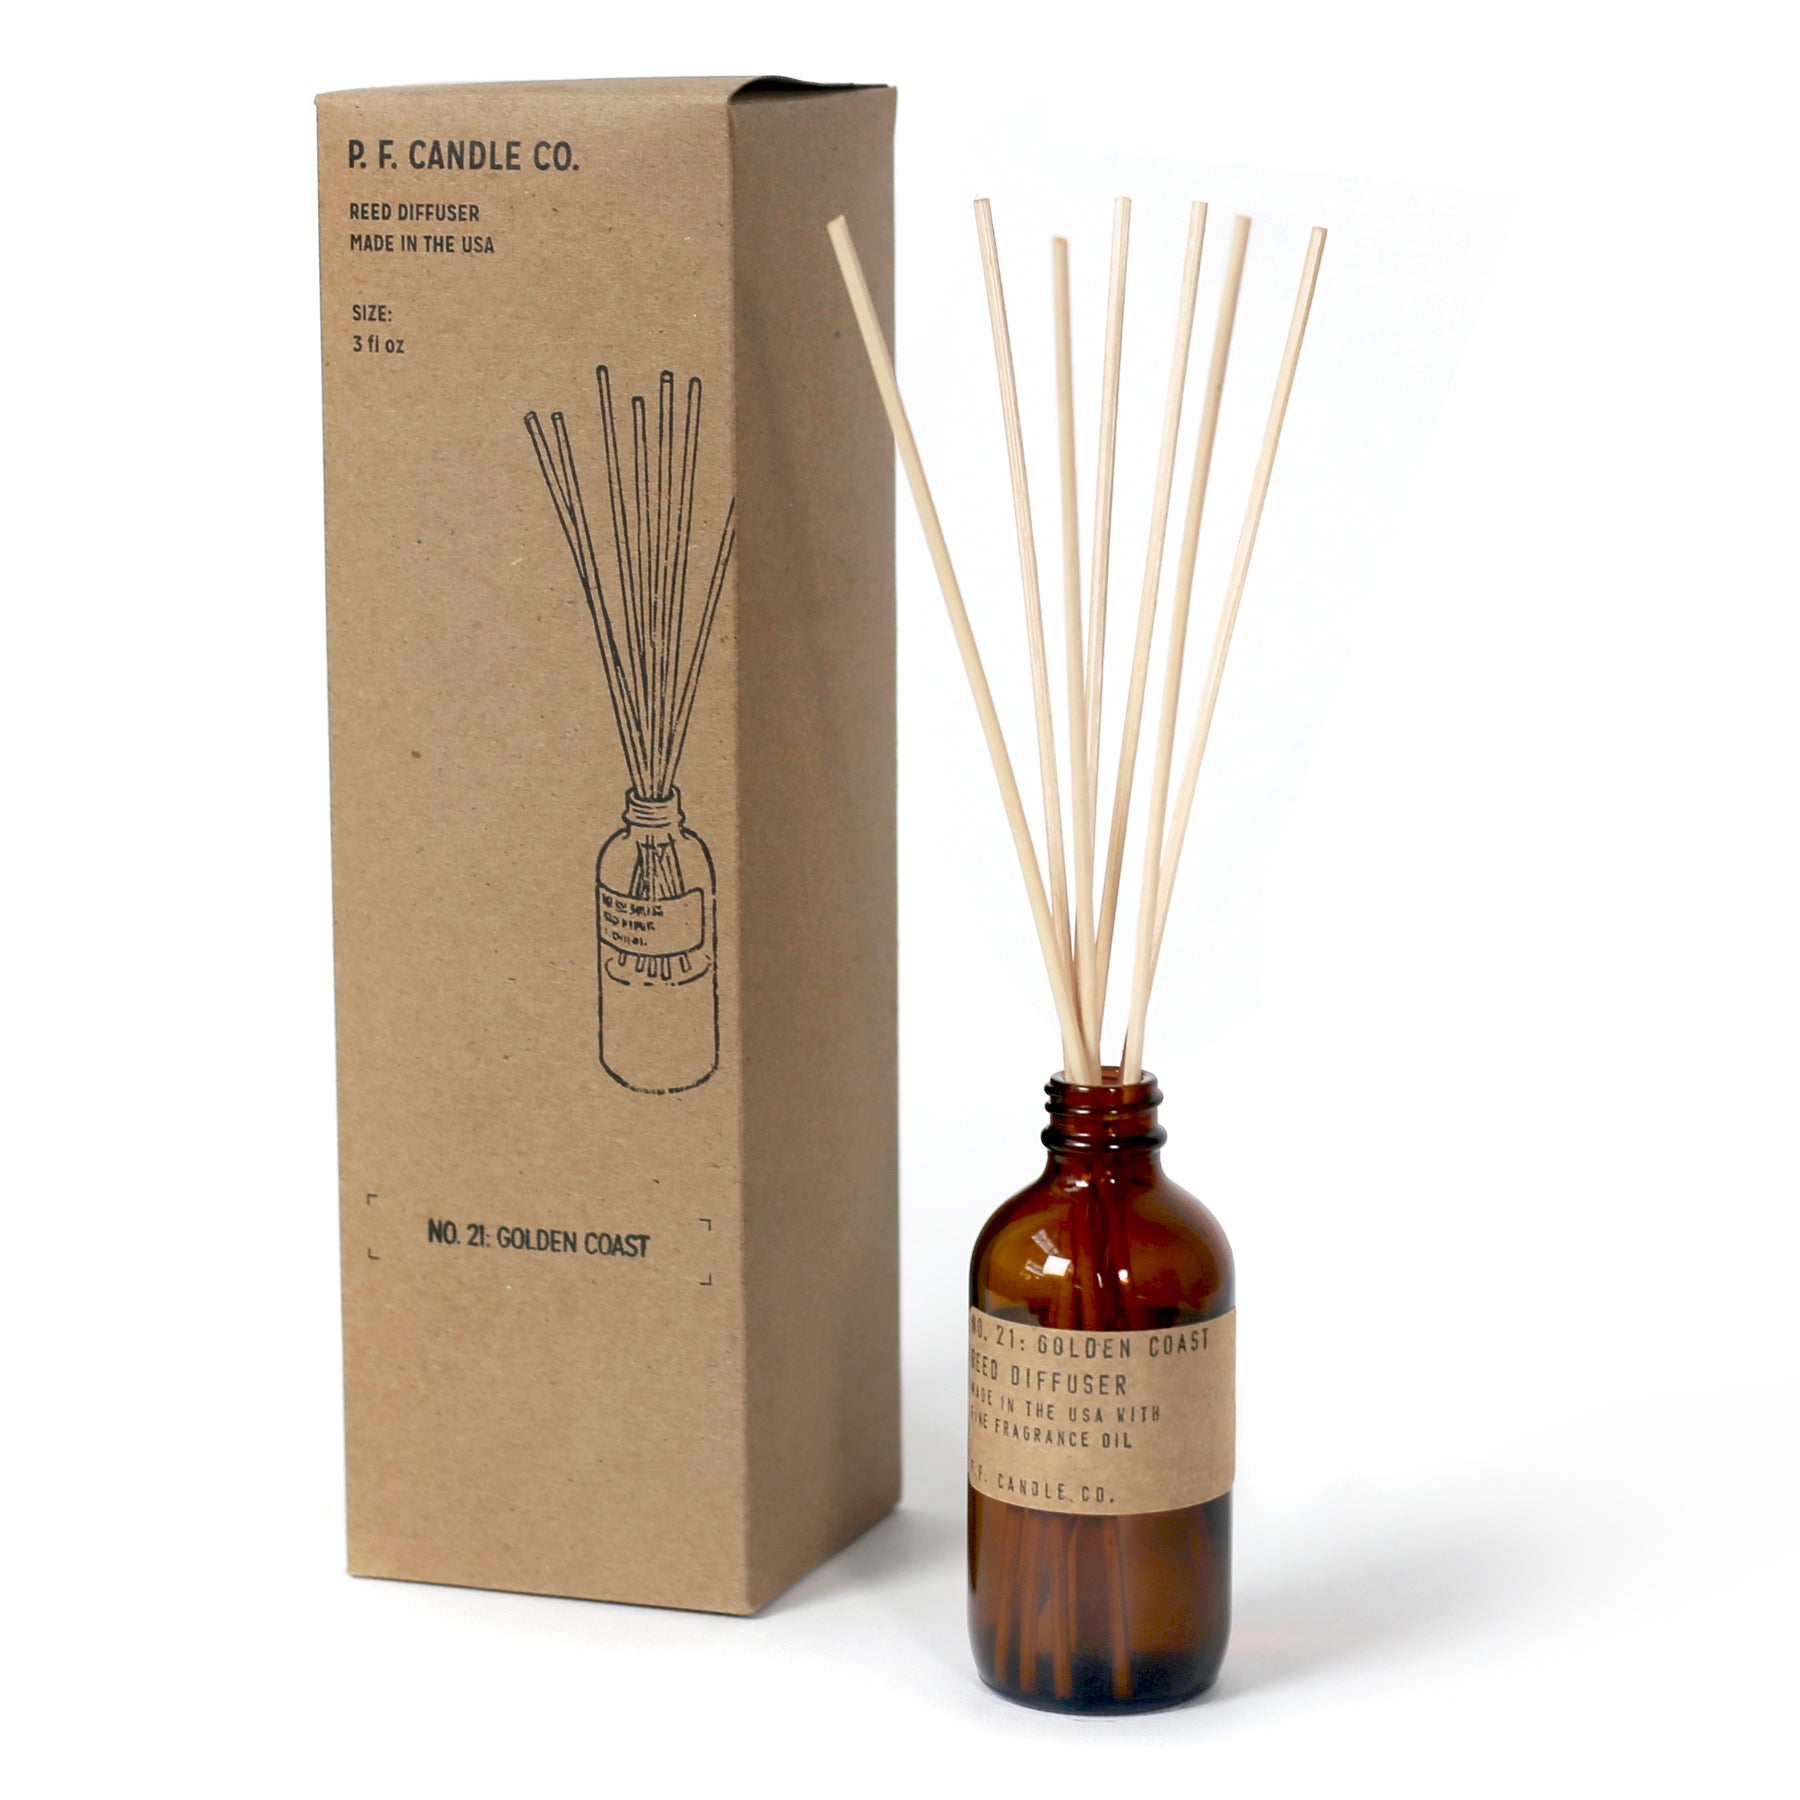 P.F. Candle Co Reed Diffuser Golden Coast - CARLYLE AVENUE